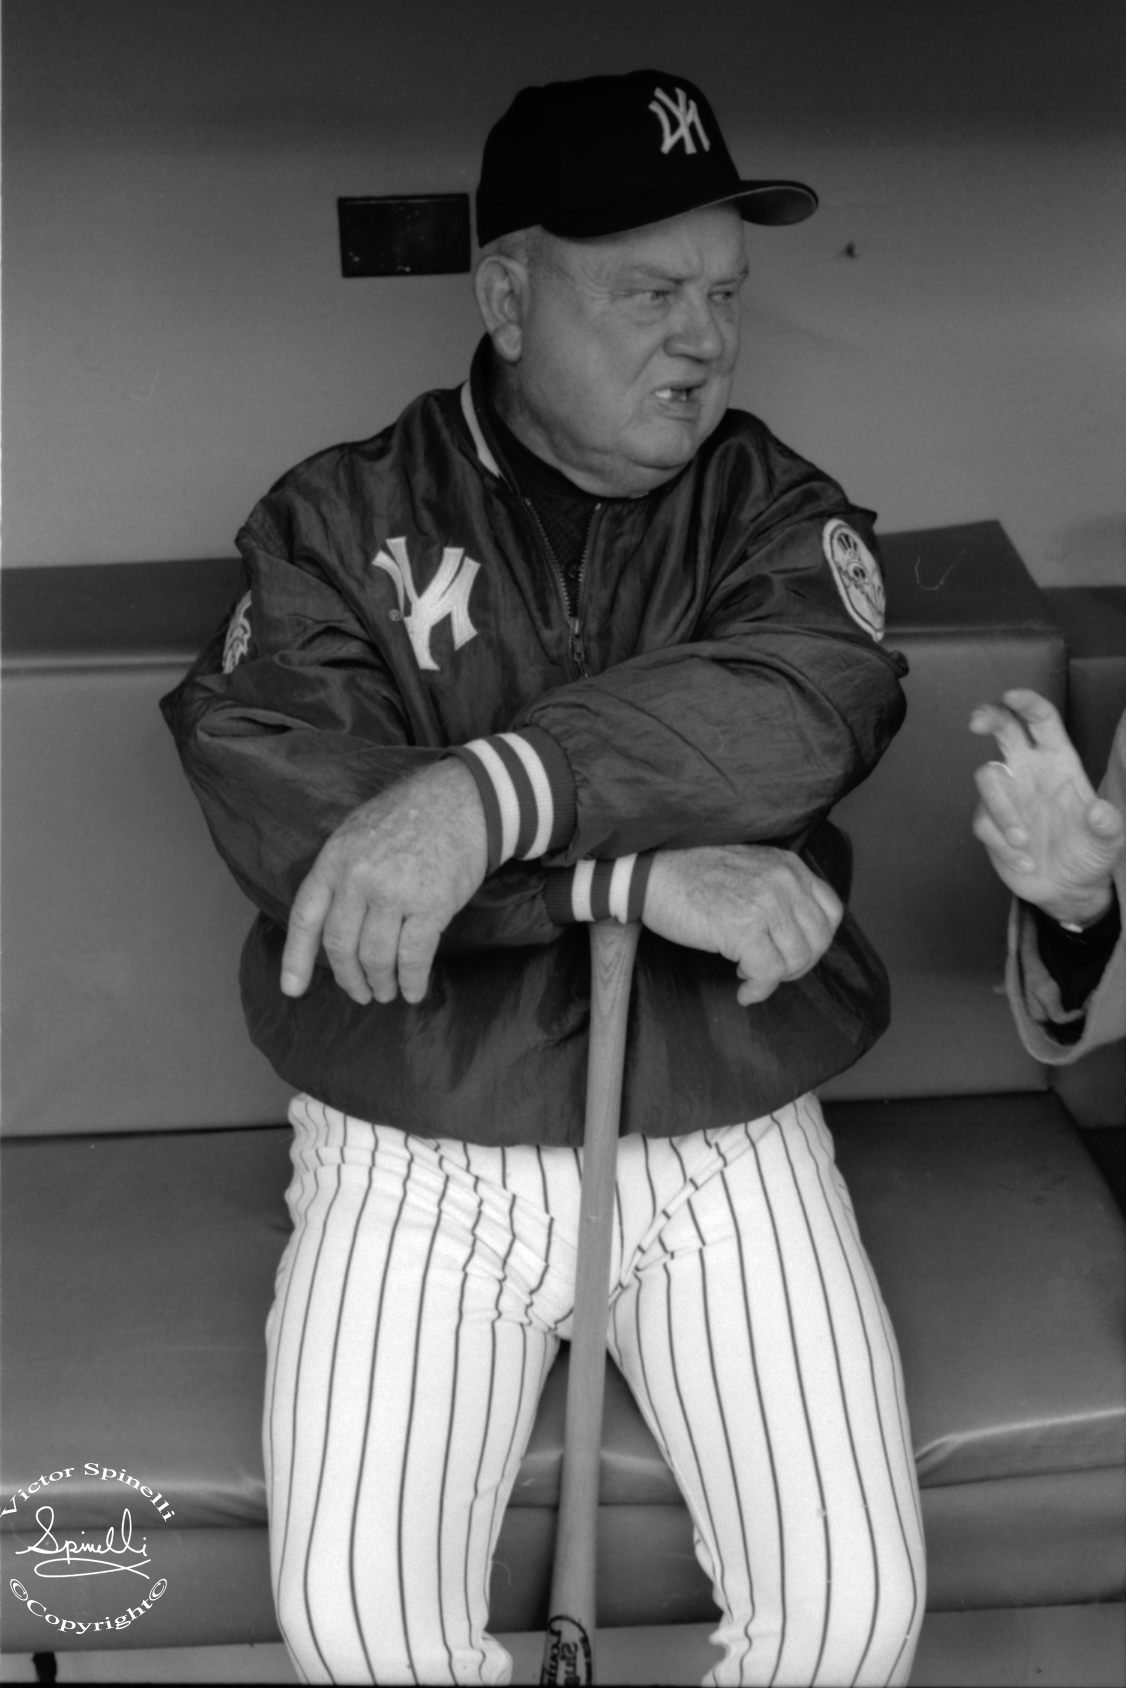 """R.I.P Don Zimmer. A baseball legend. I took this photograph of """"Zim"""" in the New York Yankee dugout during the 1999 World Series. ©Victor Spinelli Archive.   Full story on NPR here:  http://www.npr.org/blogs/thetwo-way/2014/06/05/319058748/baseball-man-don-zimmer-dies-ending-an-epic-sports-career?sc=17&f=1001&utm_source=iosnewsapp&utm_medium=Email&utm_campaign=app"""